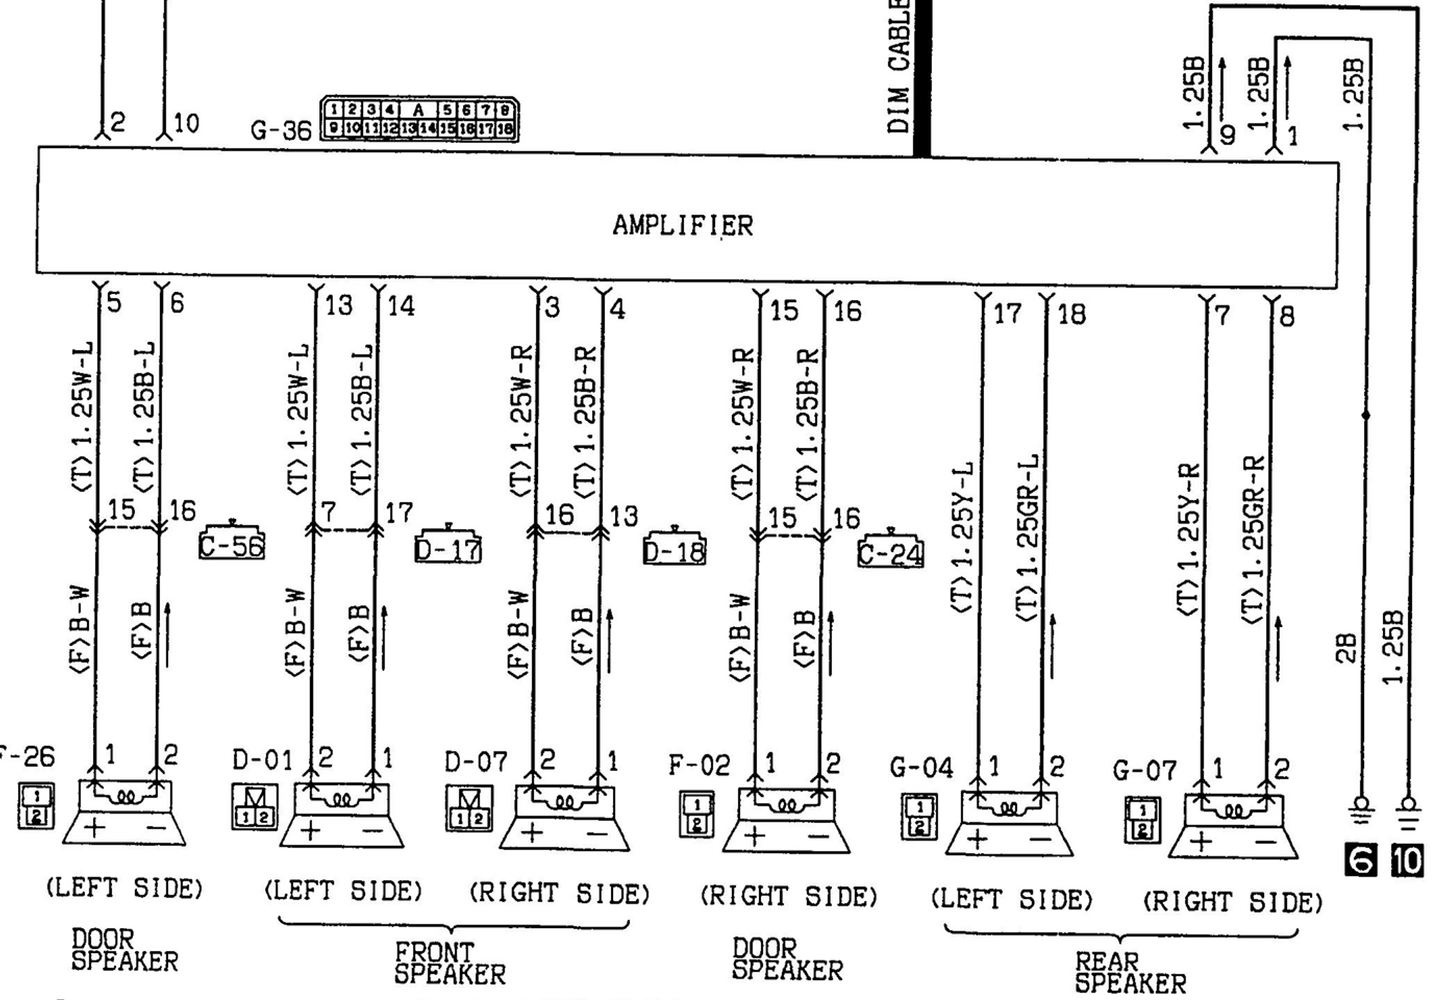 2002 Mitsubishi Eclipse Stereo Wiring Diagram from static.cargurus.com